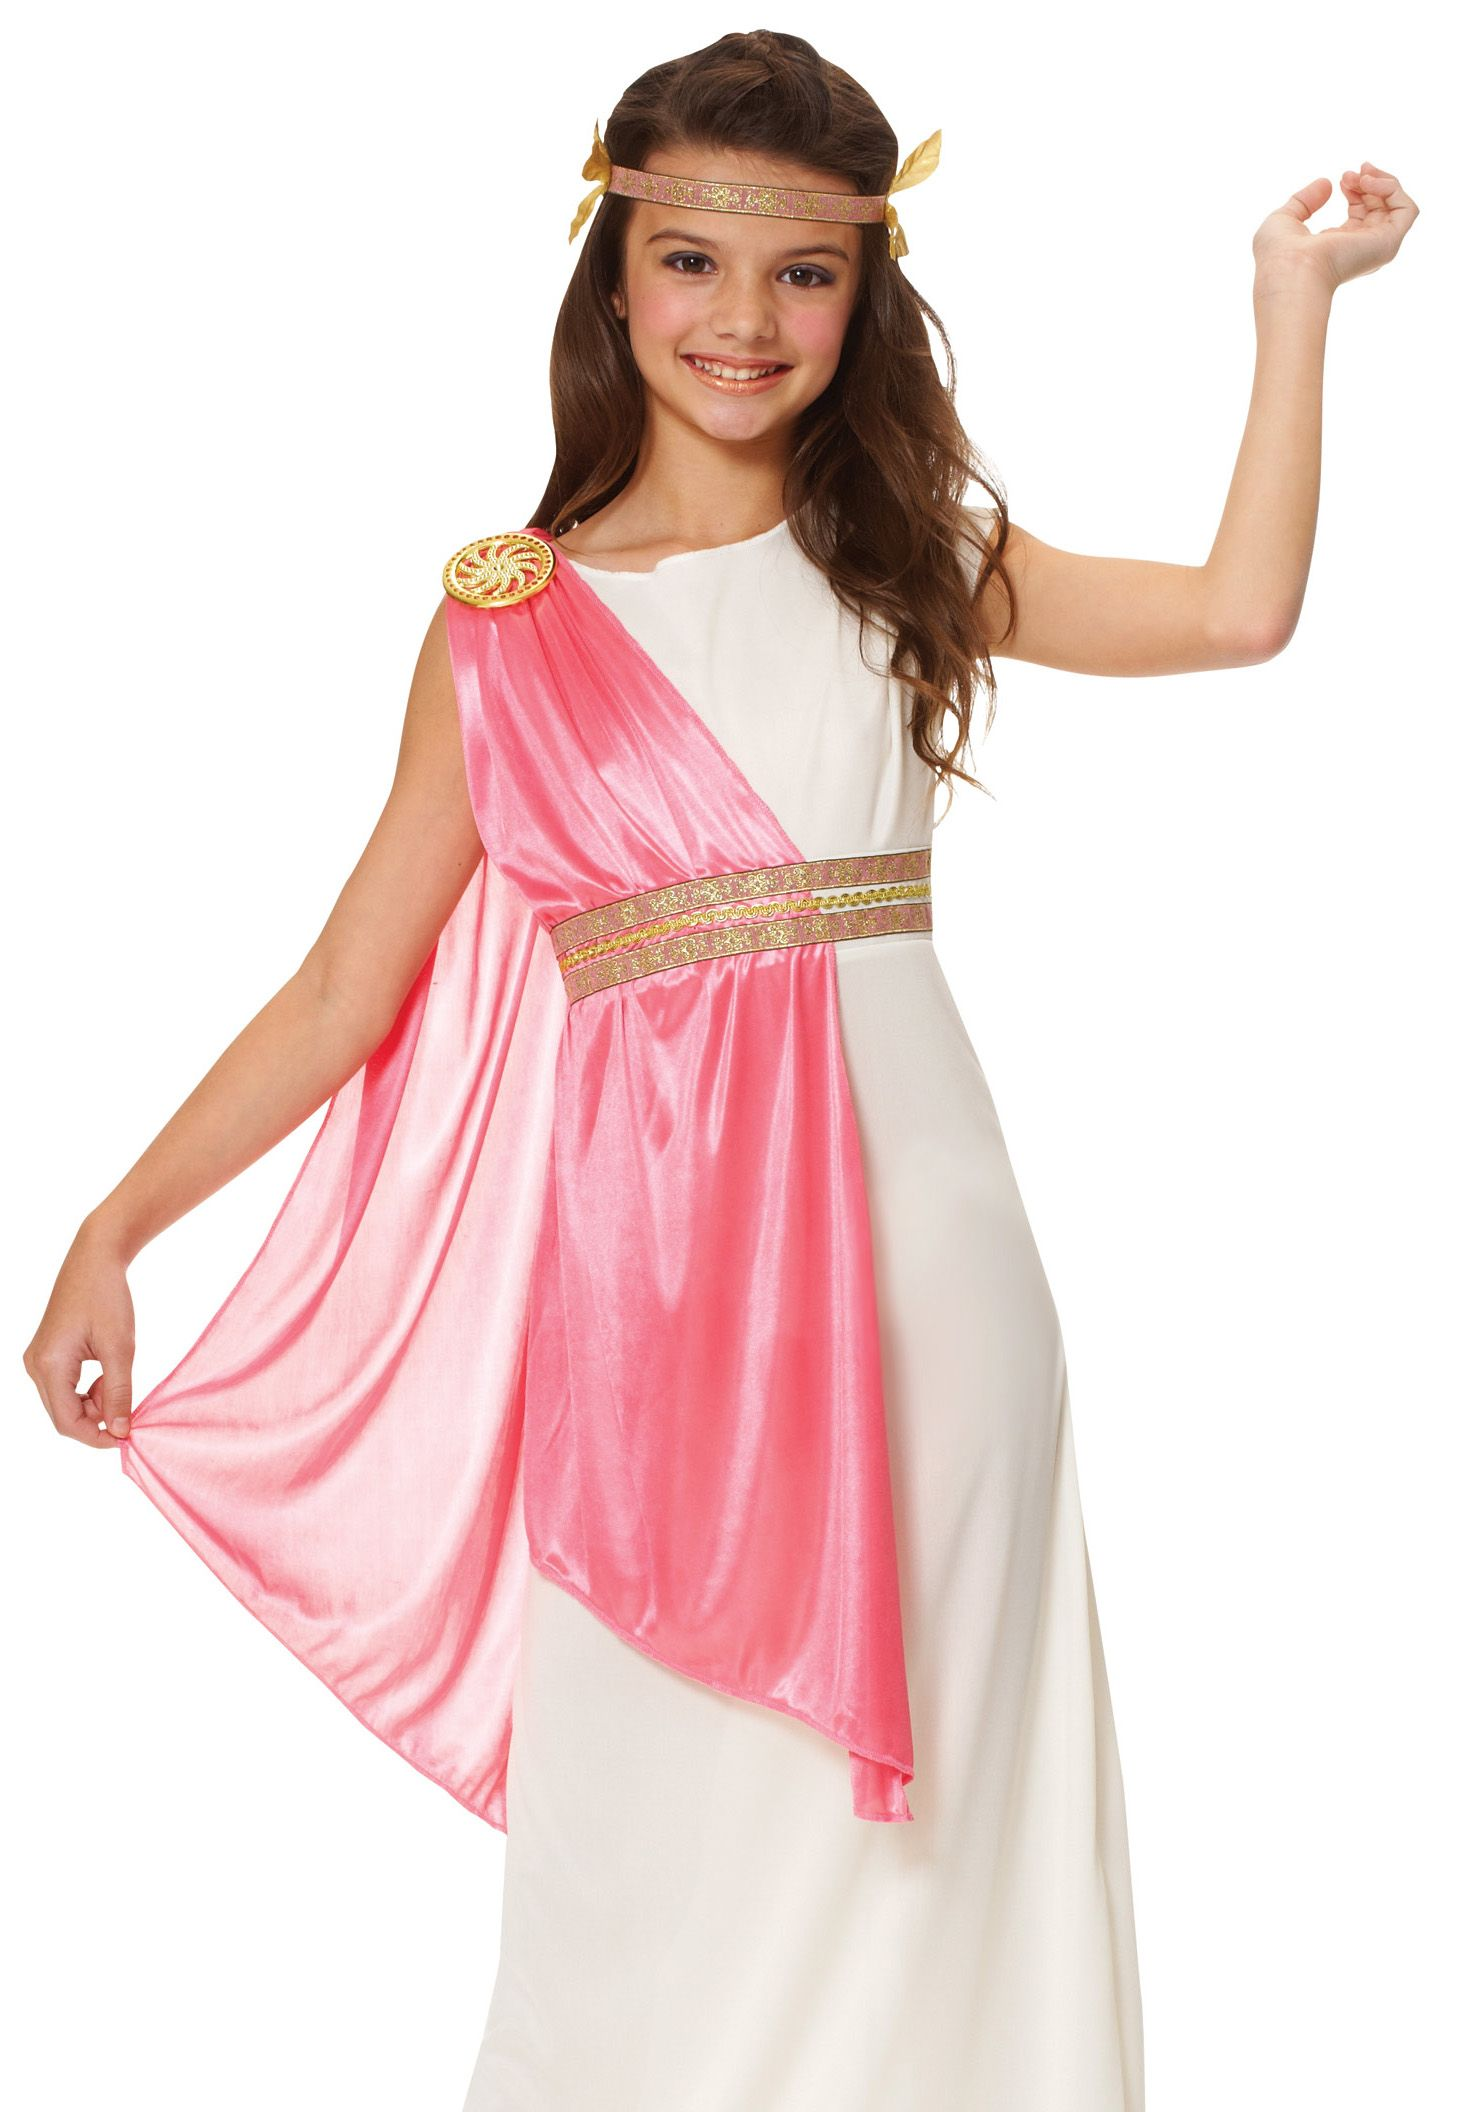 A godess costumes | Girls costumes❤ | Pinterest | Disfrases ...